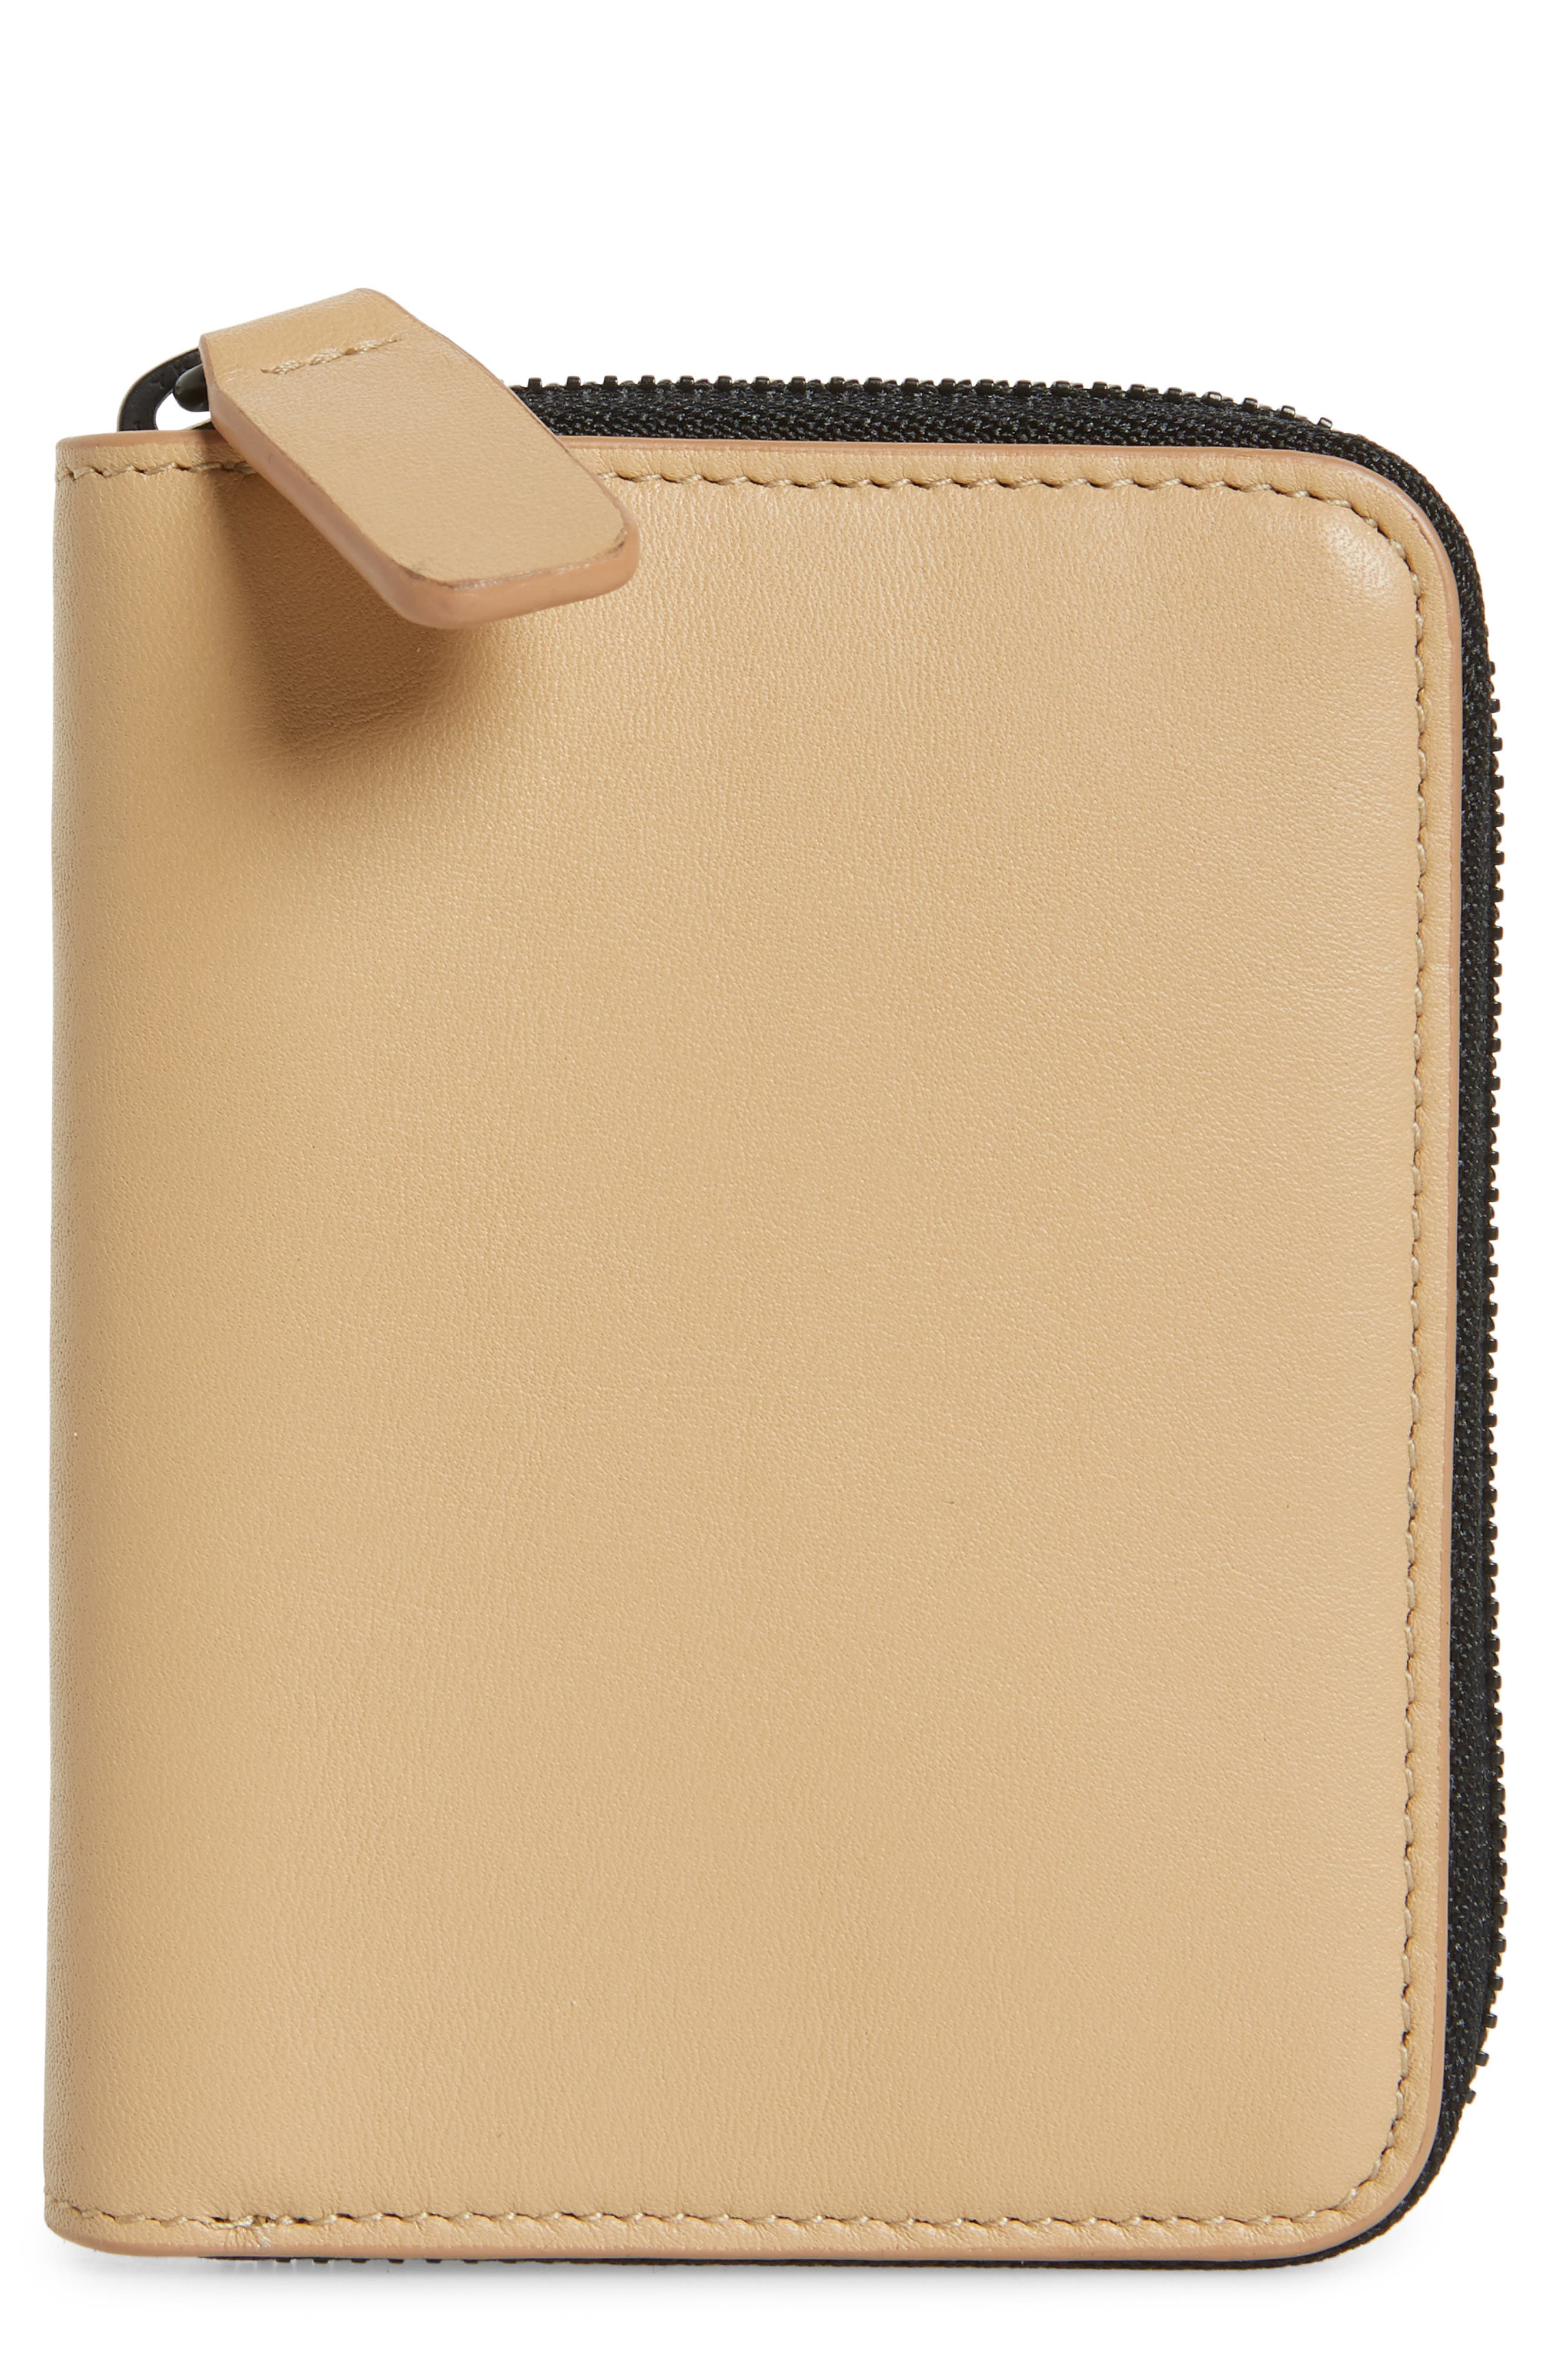 COMMON PROJECTS Nappa Leather Zip Coin Case, Main, color, TAN